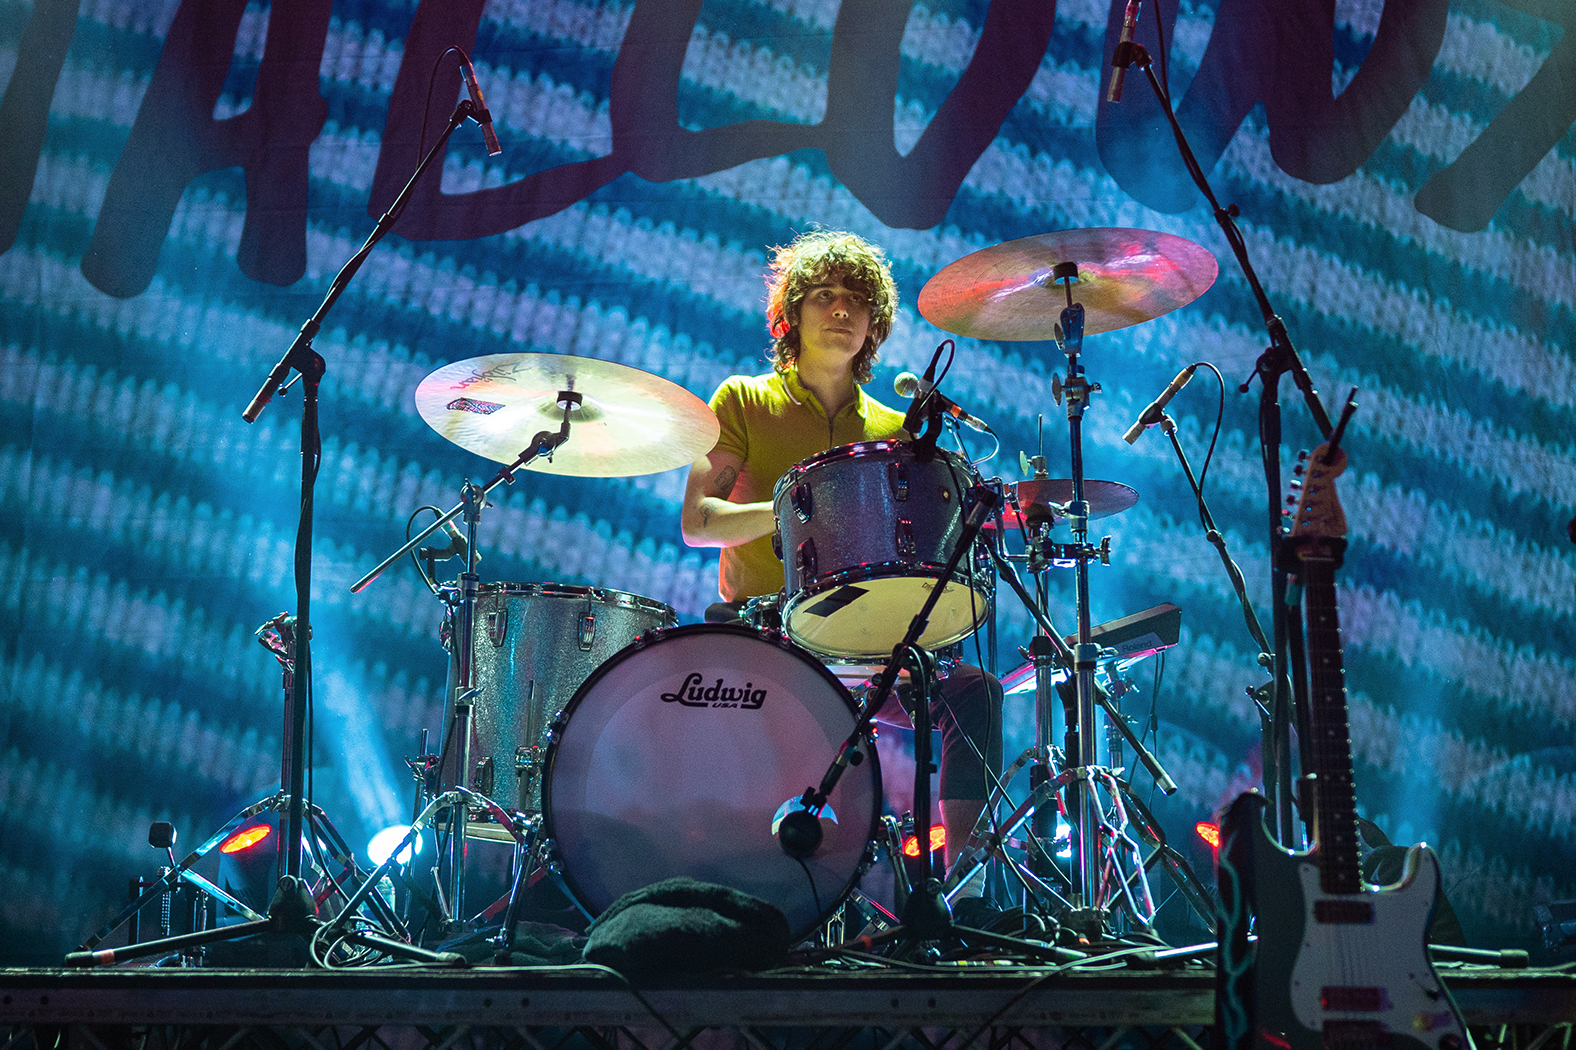 Wallows - Electric Brixton - 06_06_19 - Milly McAlister 5.jpg